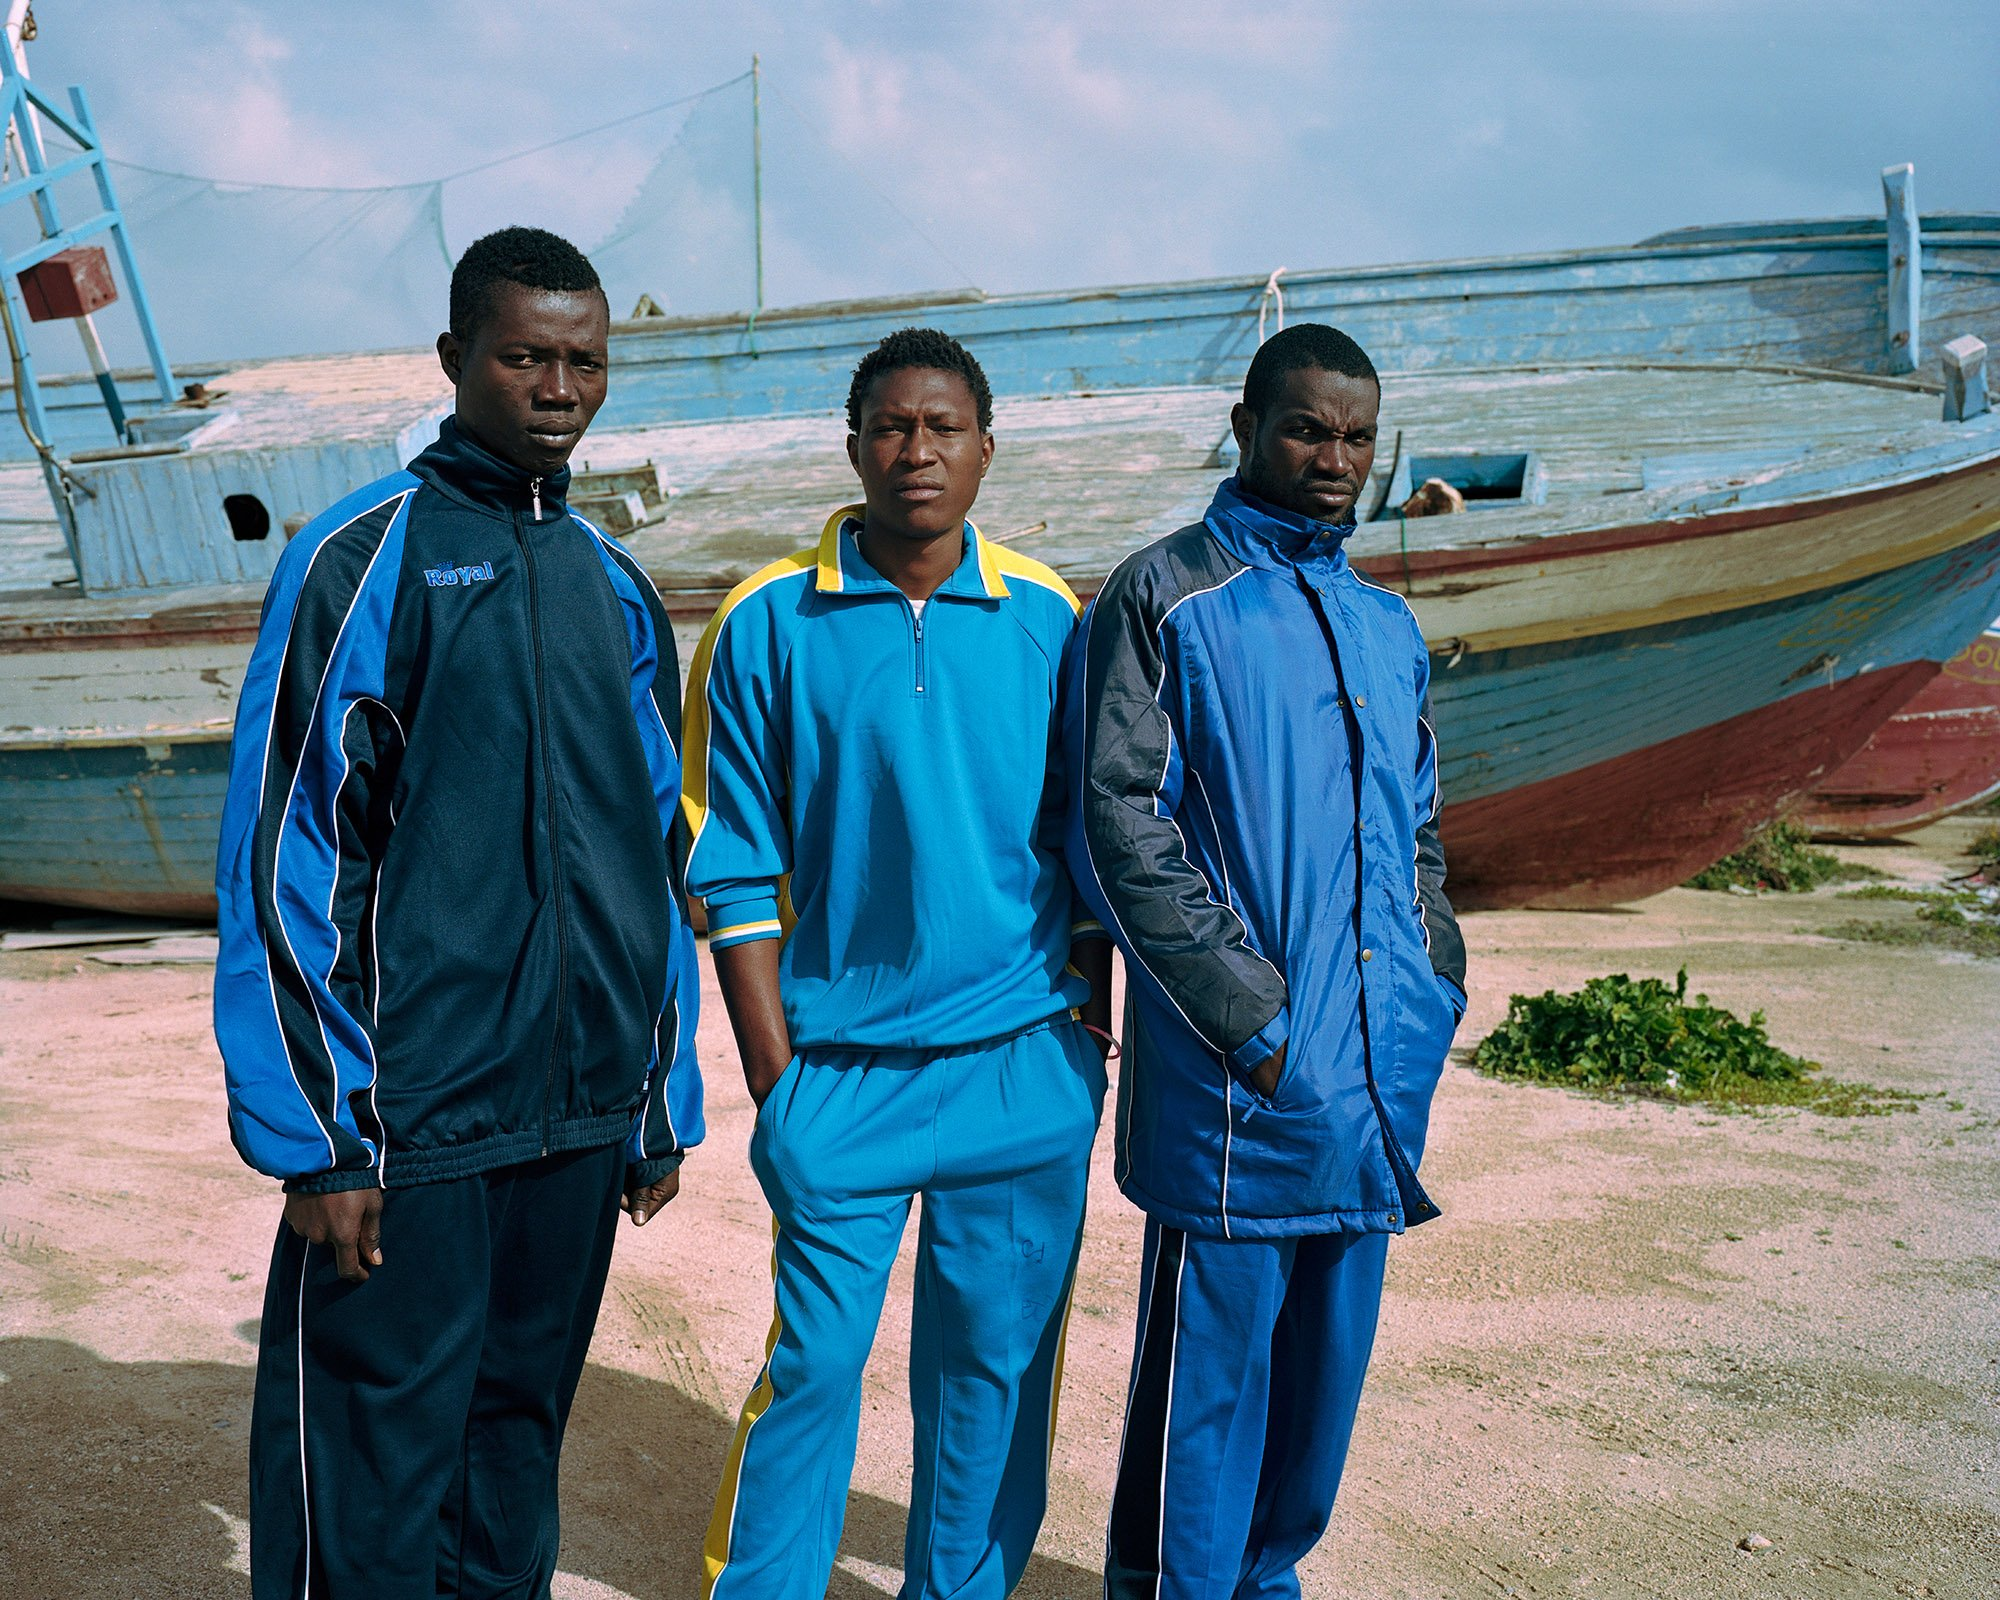 three man wearing blue clothes photography of the migration into Europe in 2015 2016